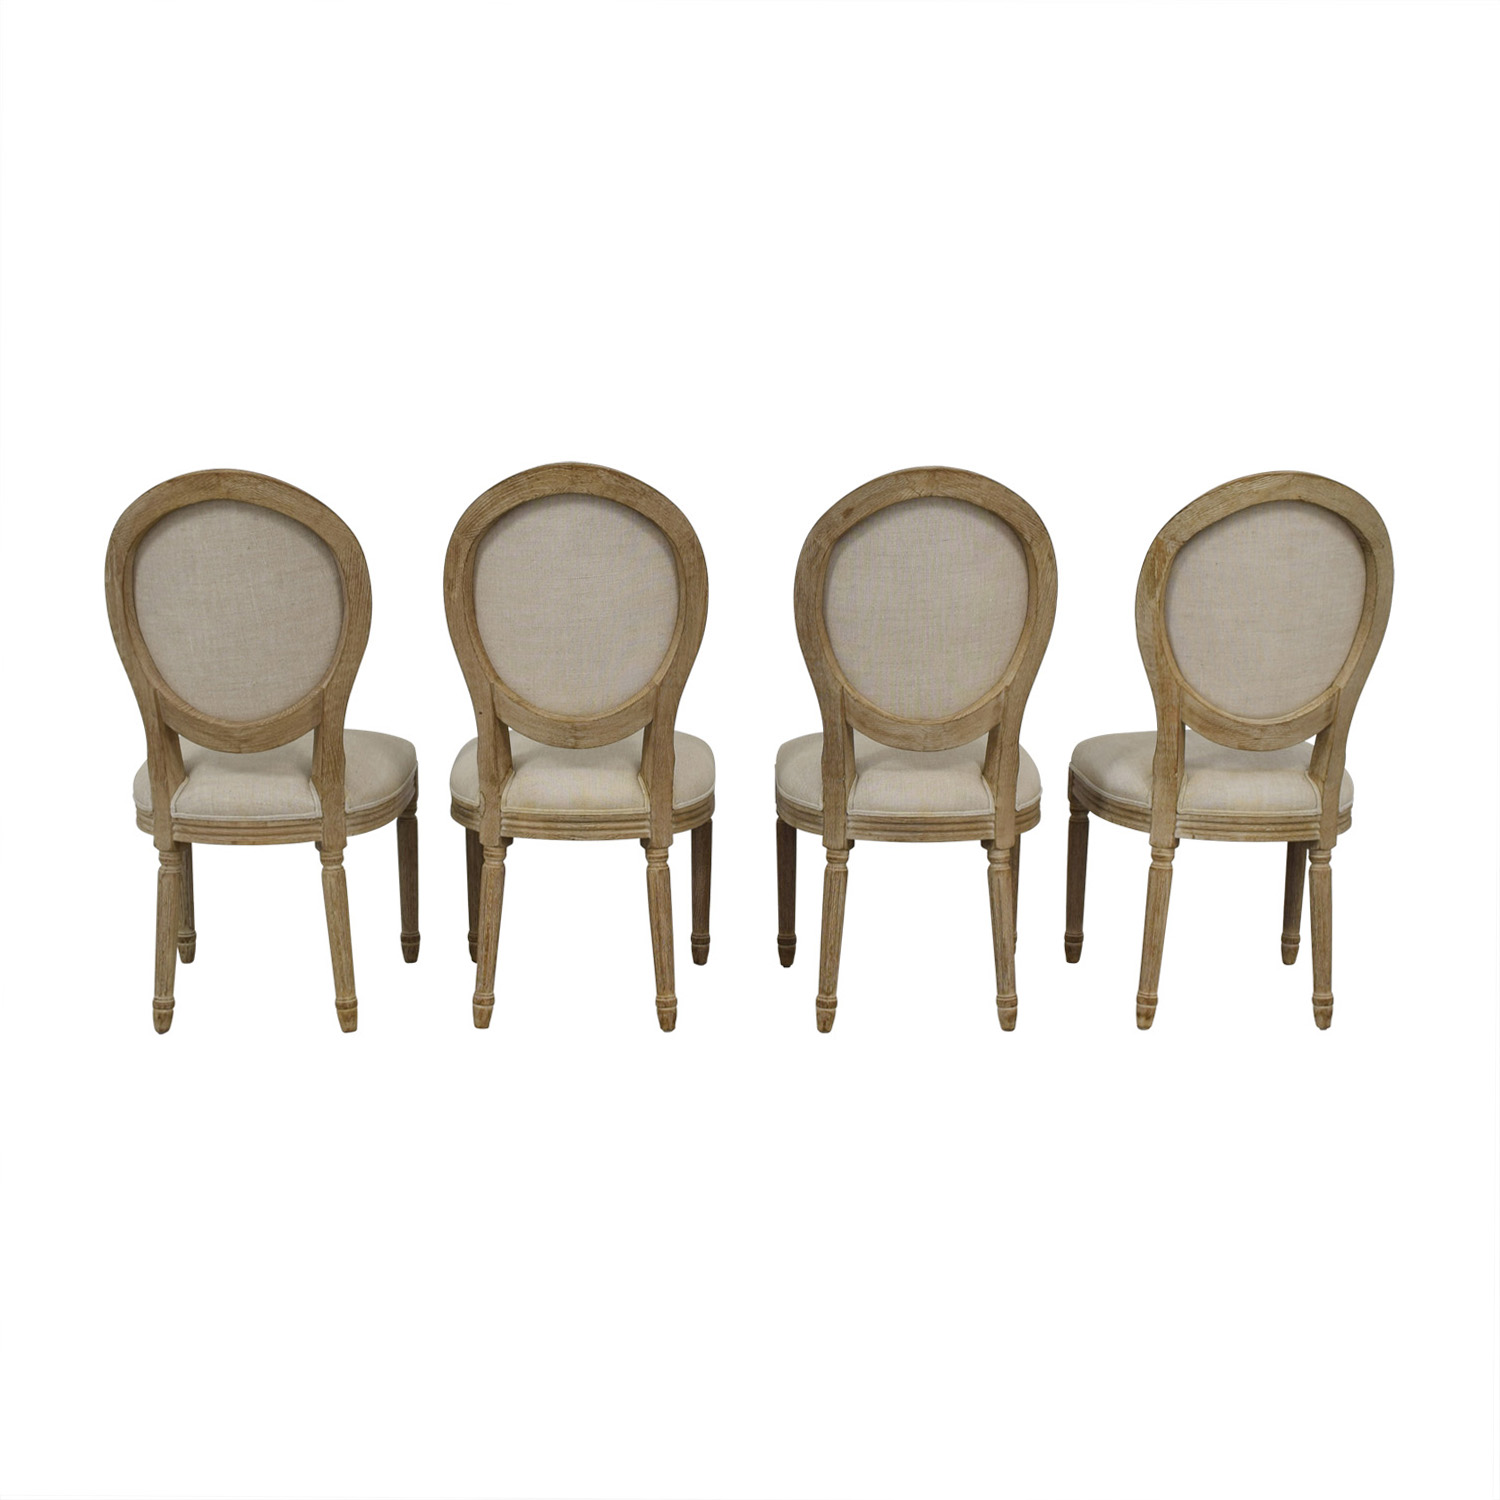 buy Restoration Hardware Restoration Hardware Vintage French Round Dining Chairs online